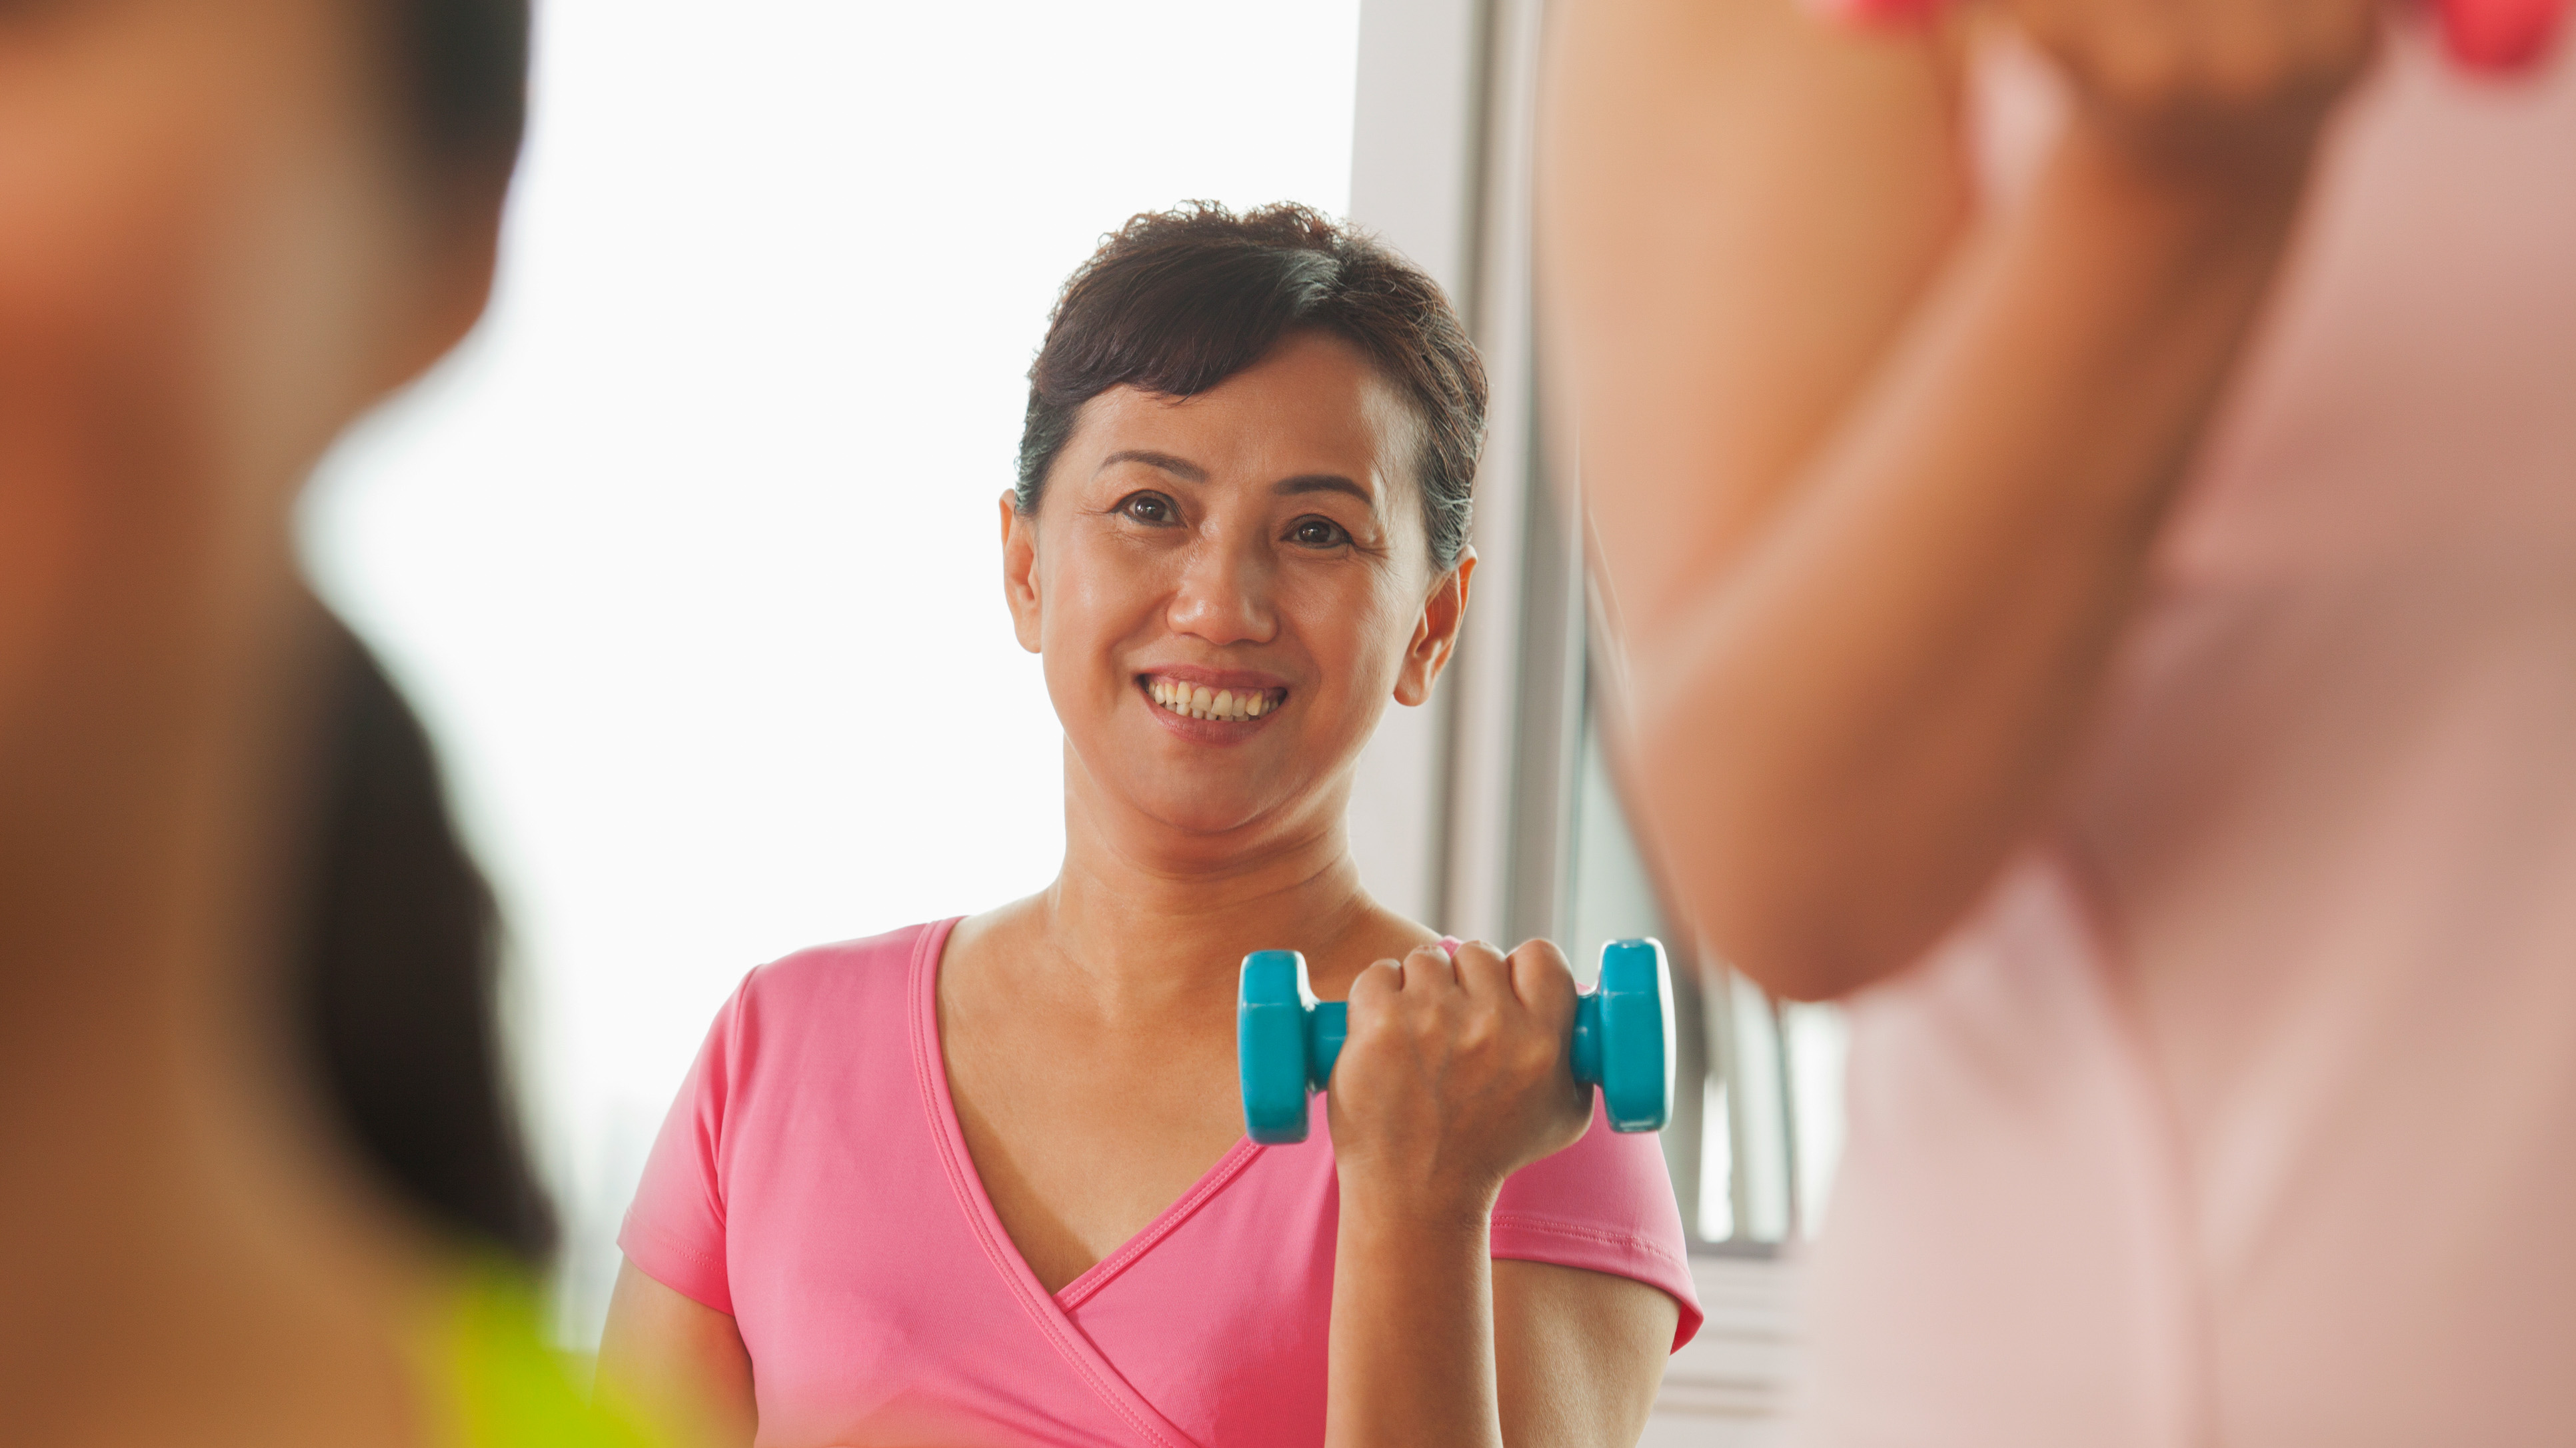 mature woman lifting weights in gym